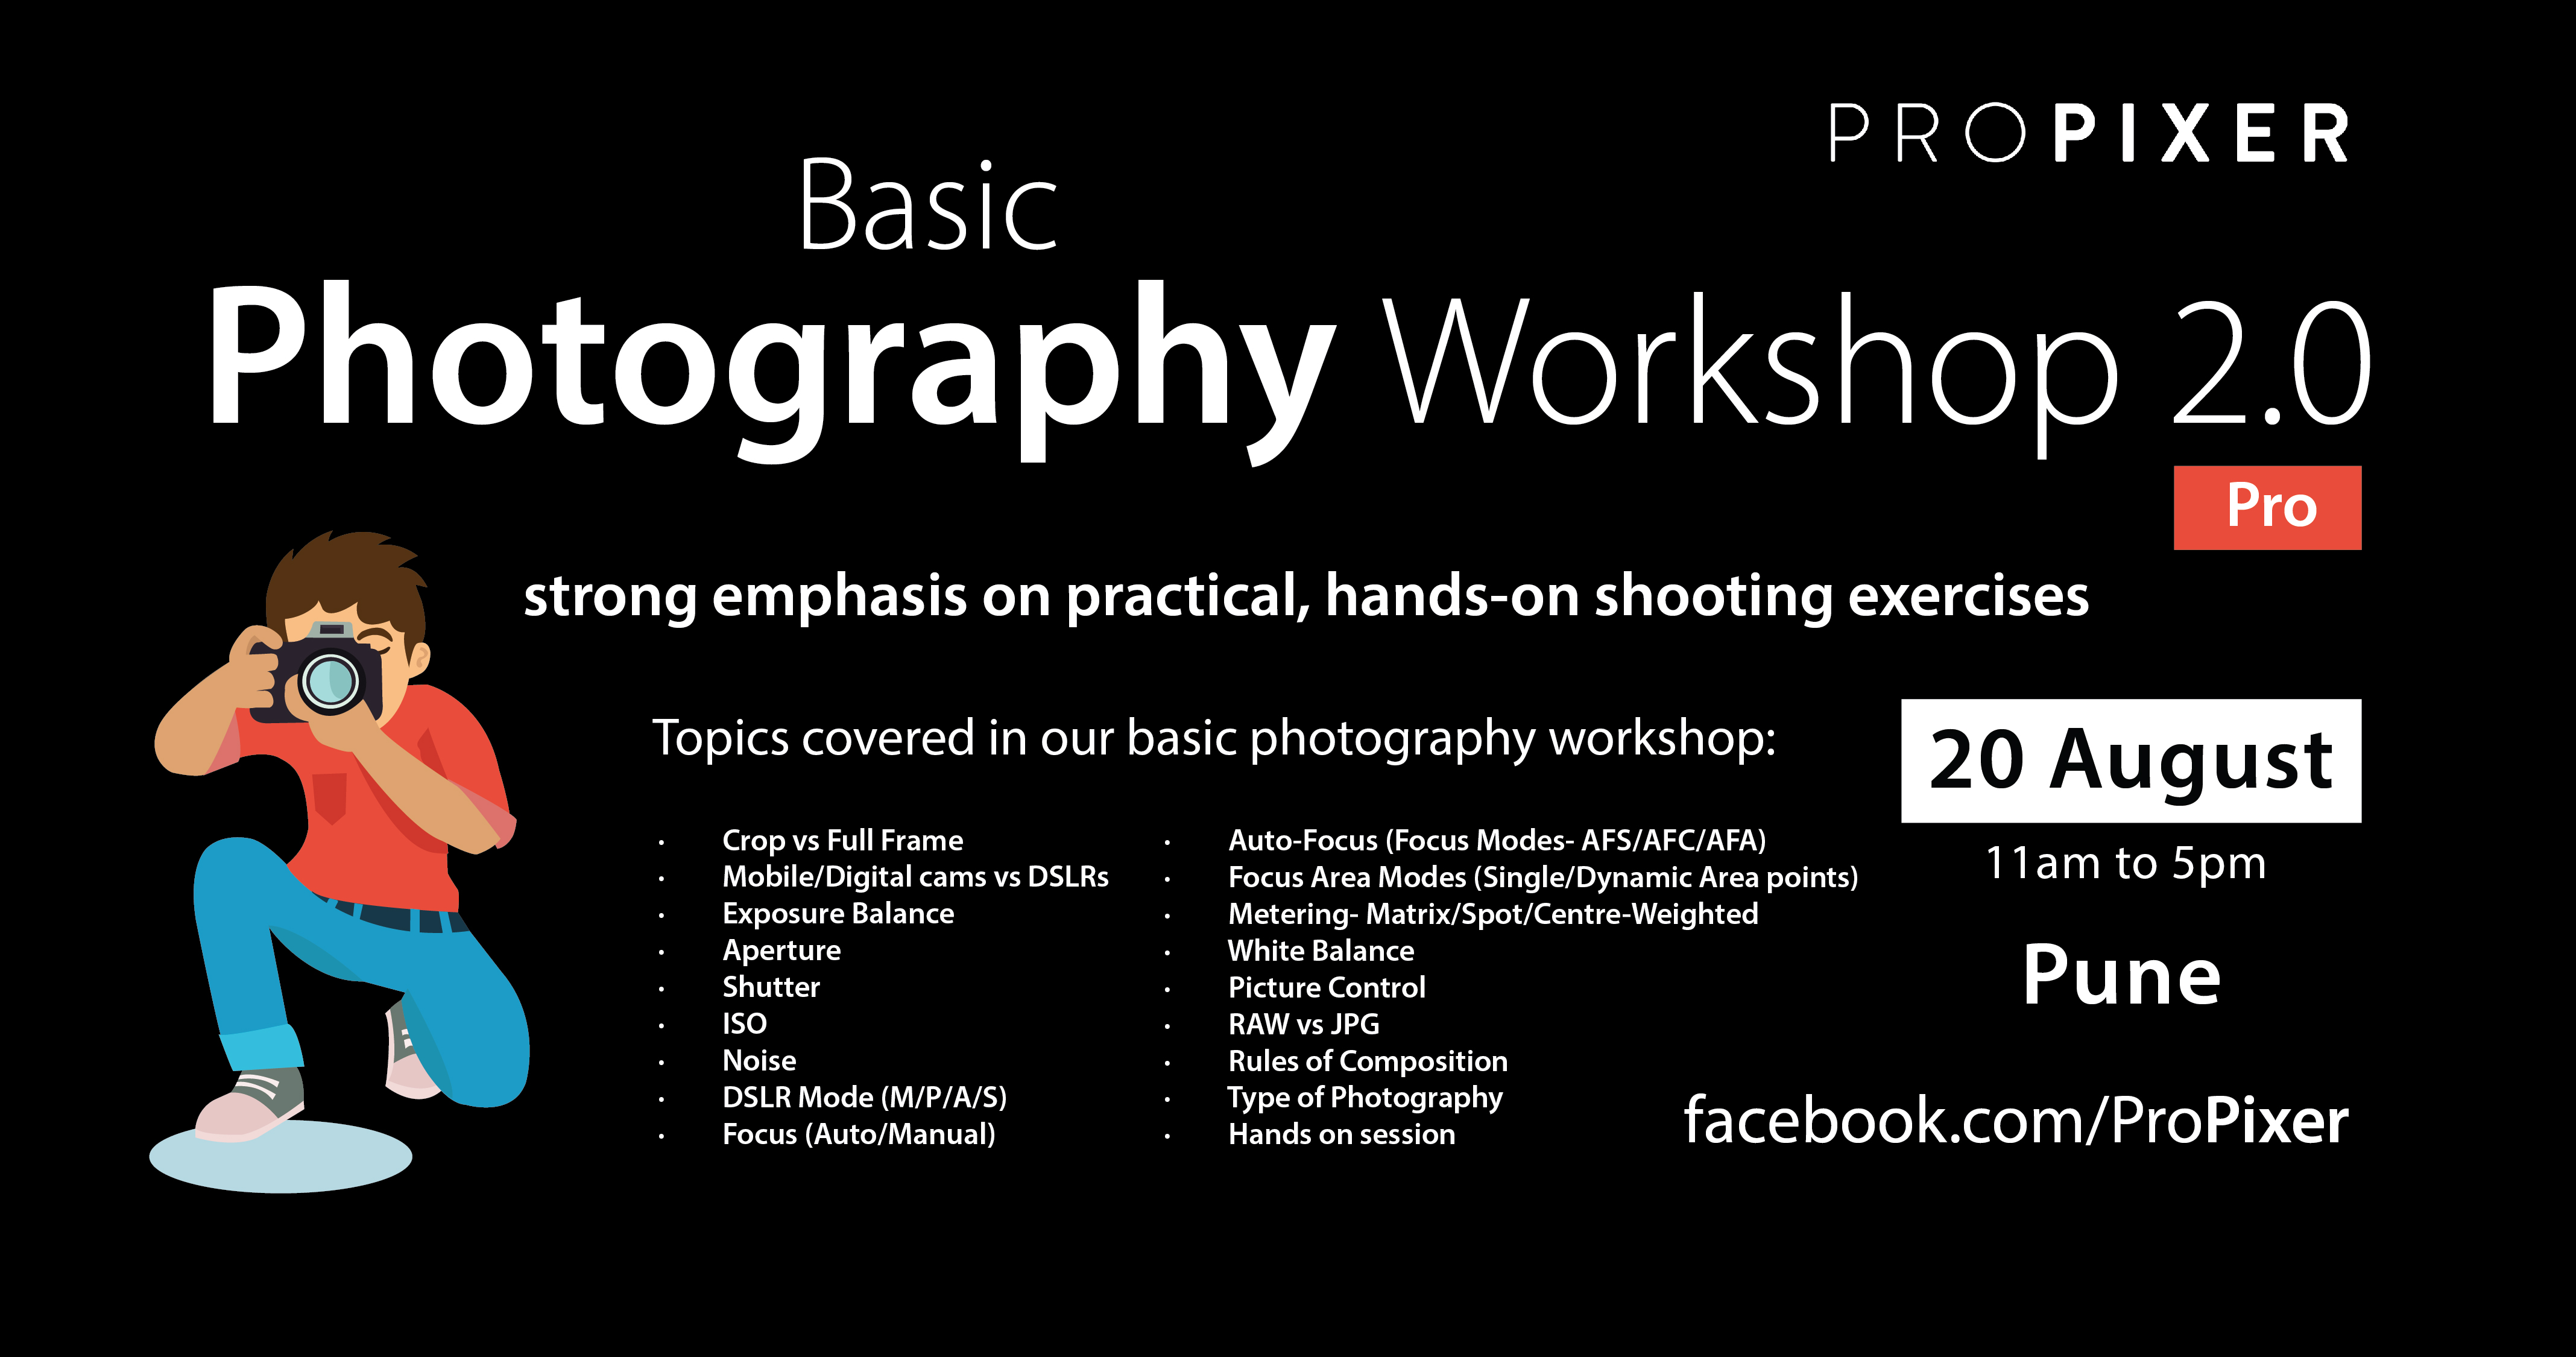 Basic Photography Workshop 2.0